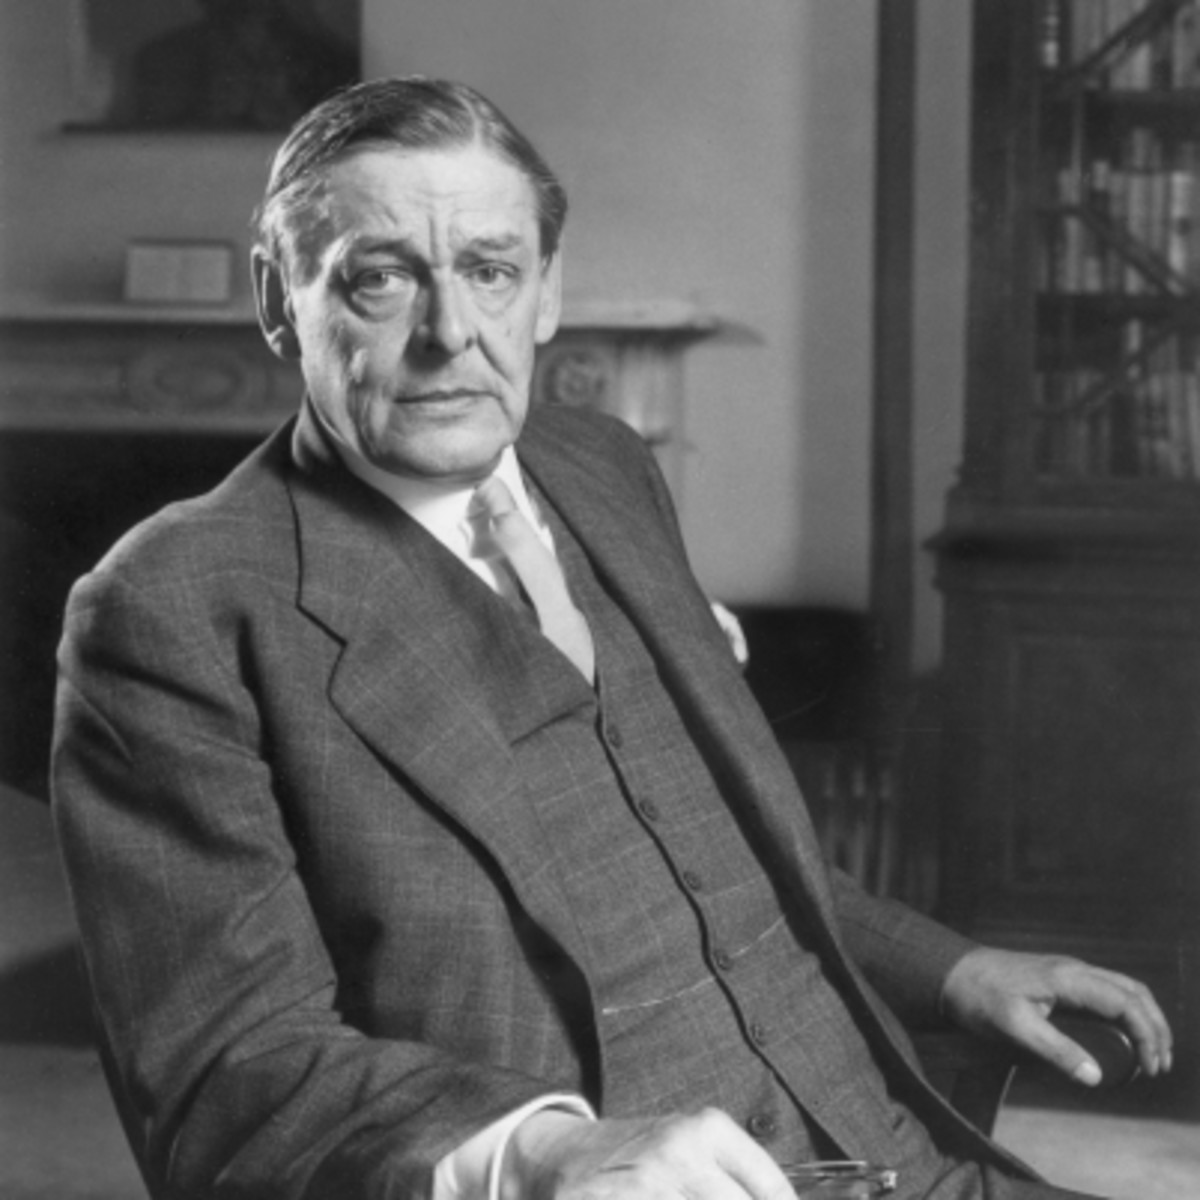 Analysing Thomas Eliot's (T.S Eliot) Poems: 'The Hollow Men' and 'Preludes'